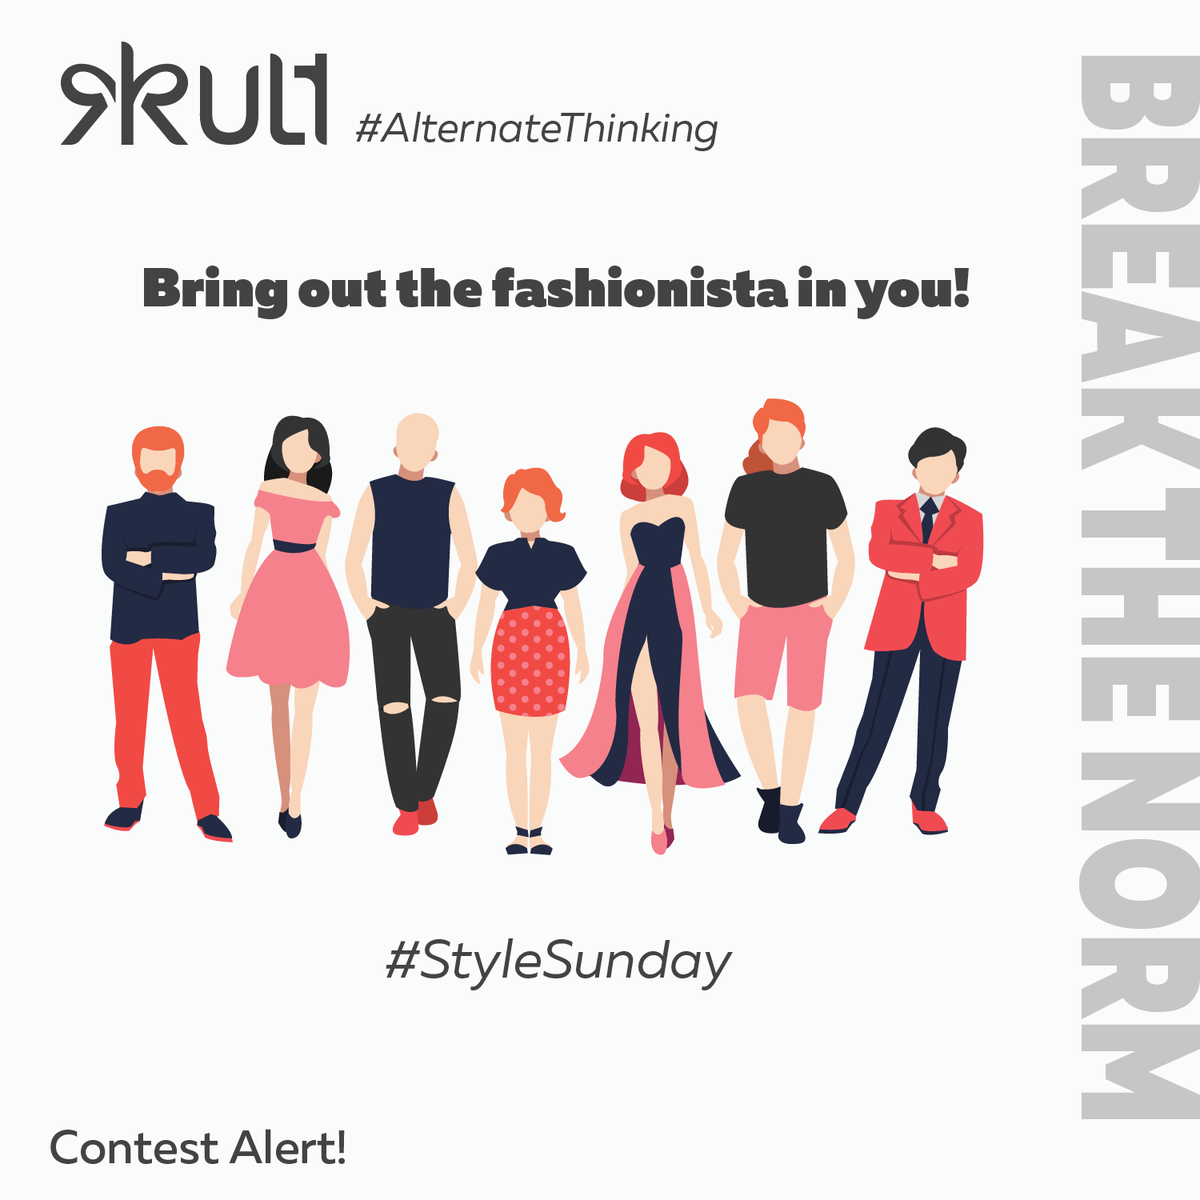 #Fun is never ending! #SundayFunday Lets make it about you this time with #StyleSunday #contest starts tomorrow! #ContestAlert #BreakTheNorm<br>http://pic.twitter.com/a2tPTCsHwt